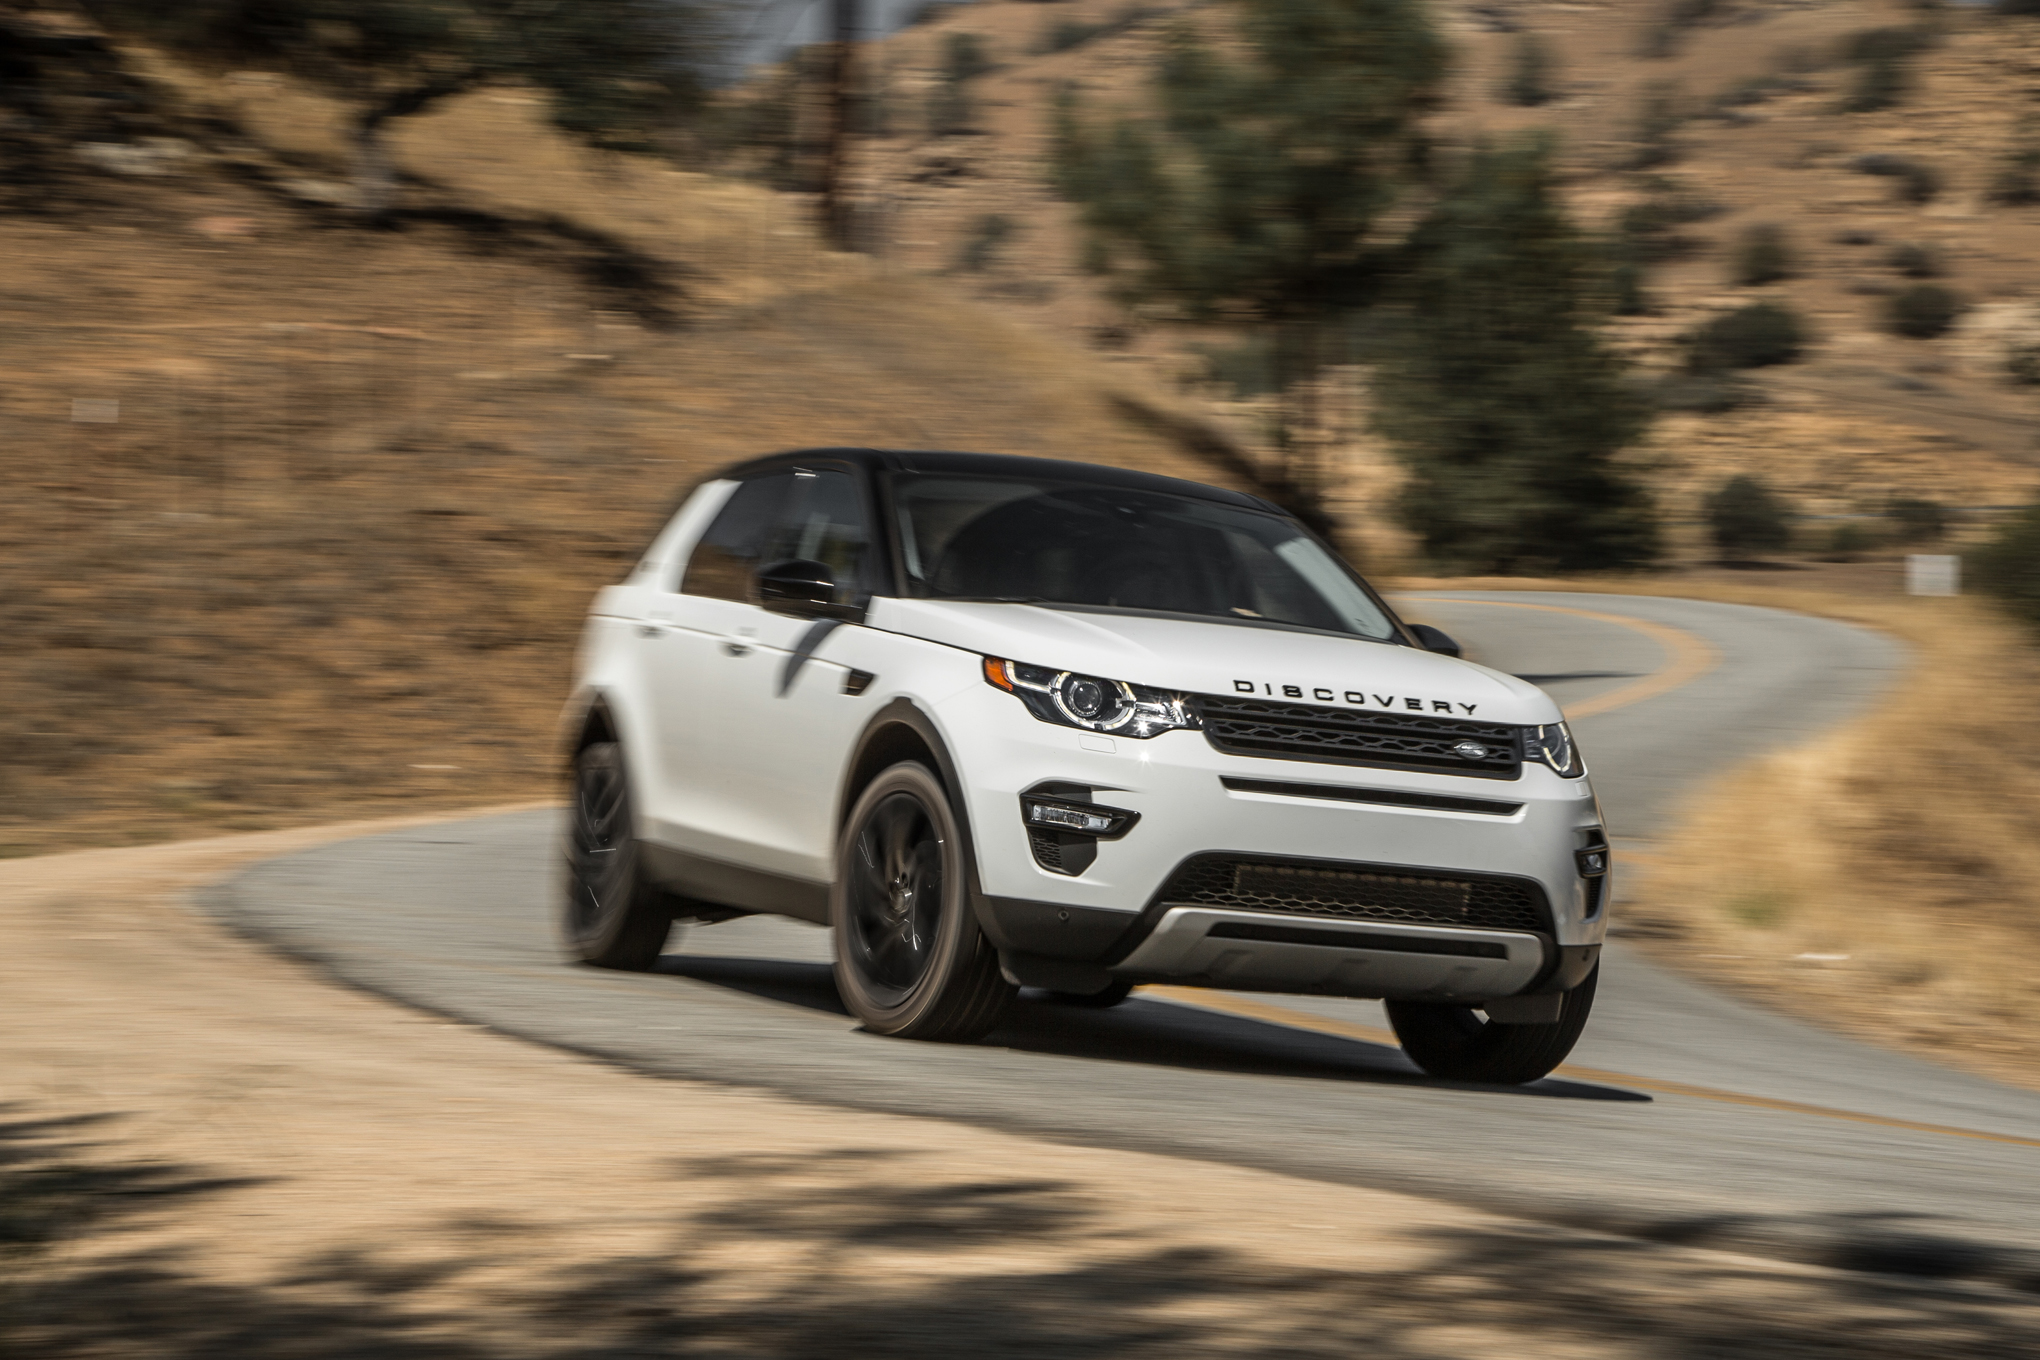 connection luxury news land buy to connections range s best h car vehicle rover the landrover cheap